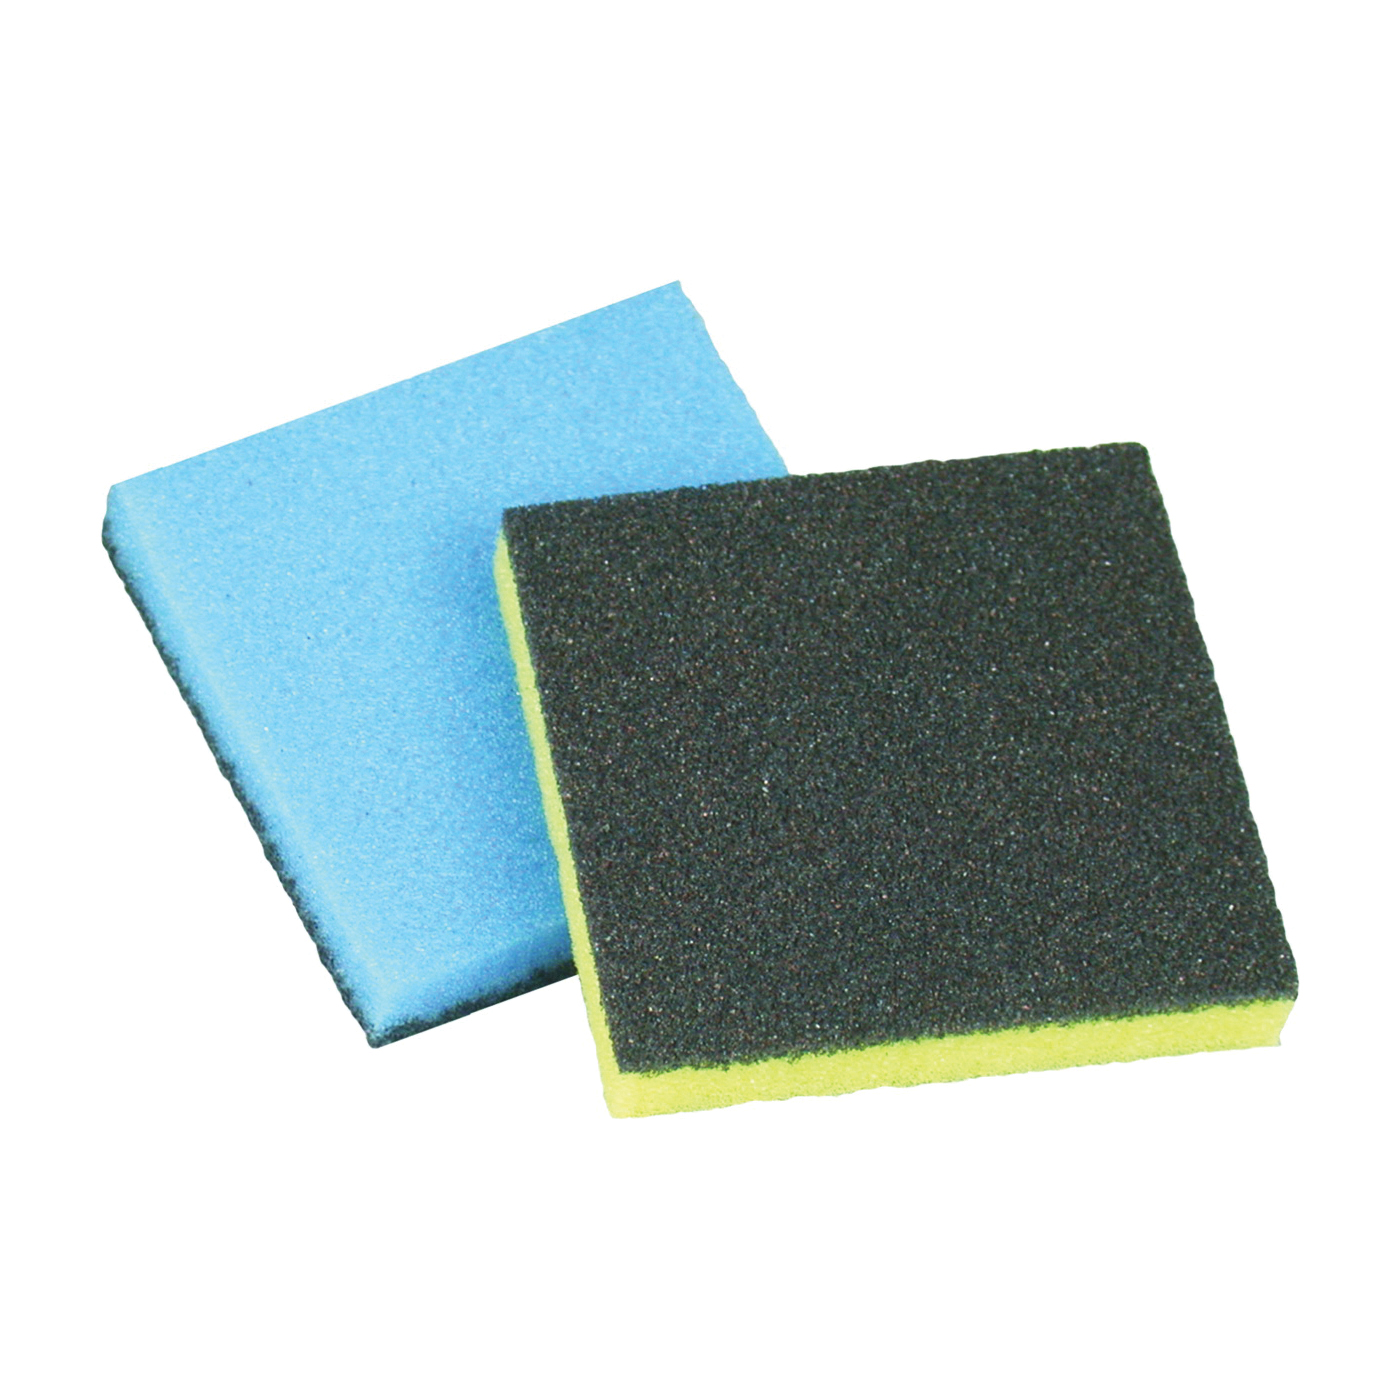 Picture of BIRDWELL 351-36 Scouring Pad, 3 in L, 3 in W